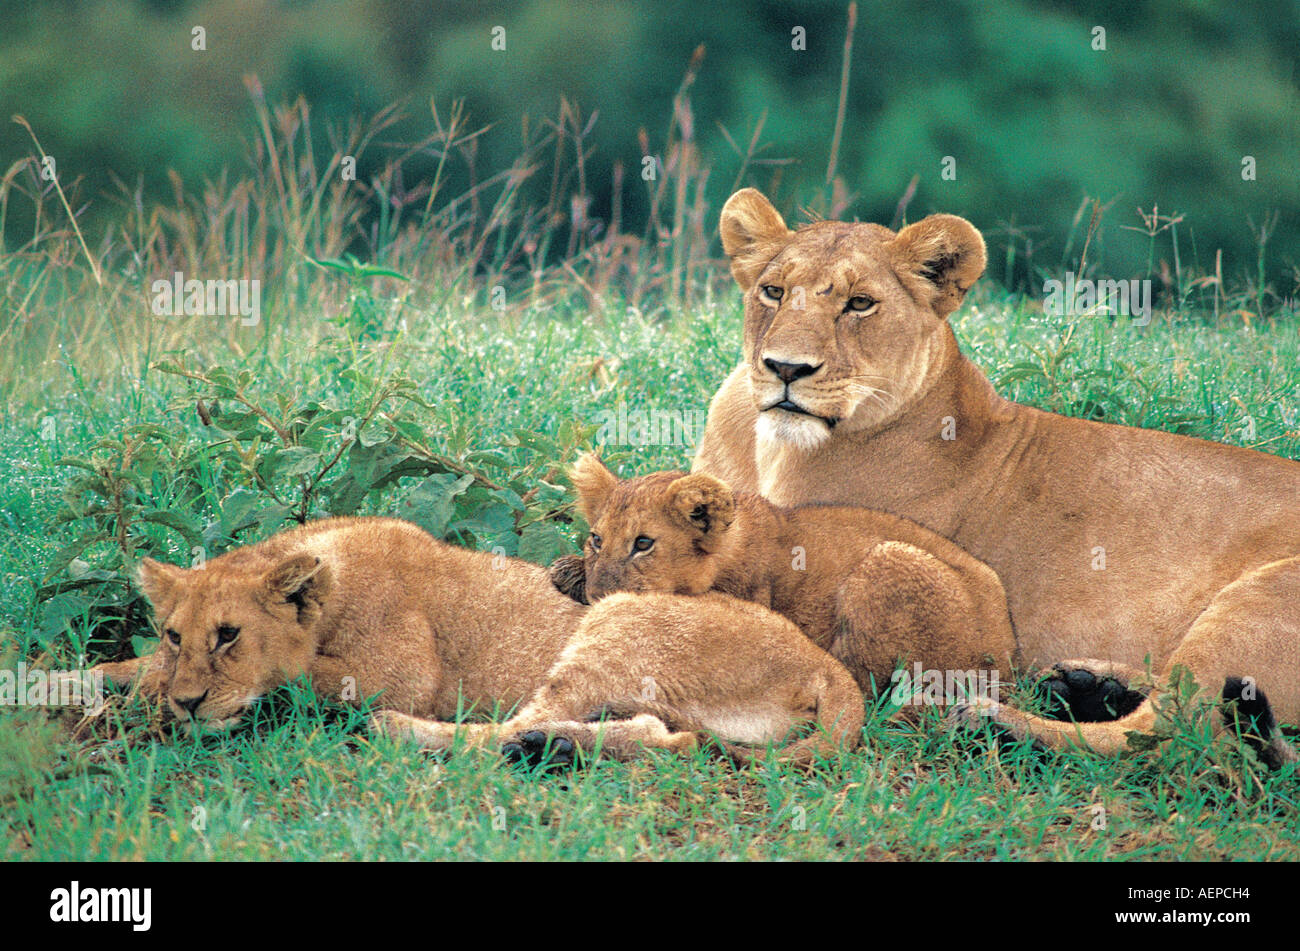 A lioness with two cubs resting in the Masai Mara National Reserve Kenya East Africa - Stock Photo